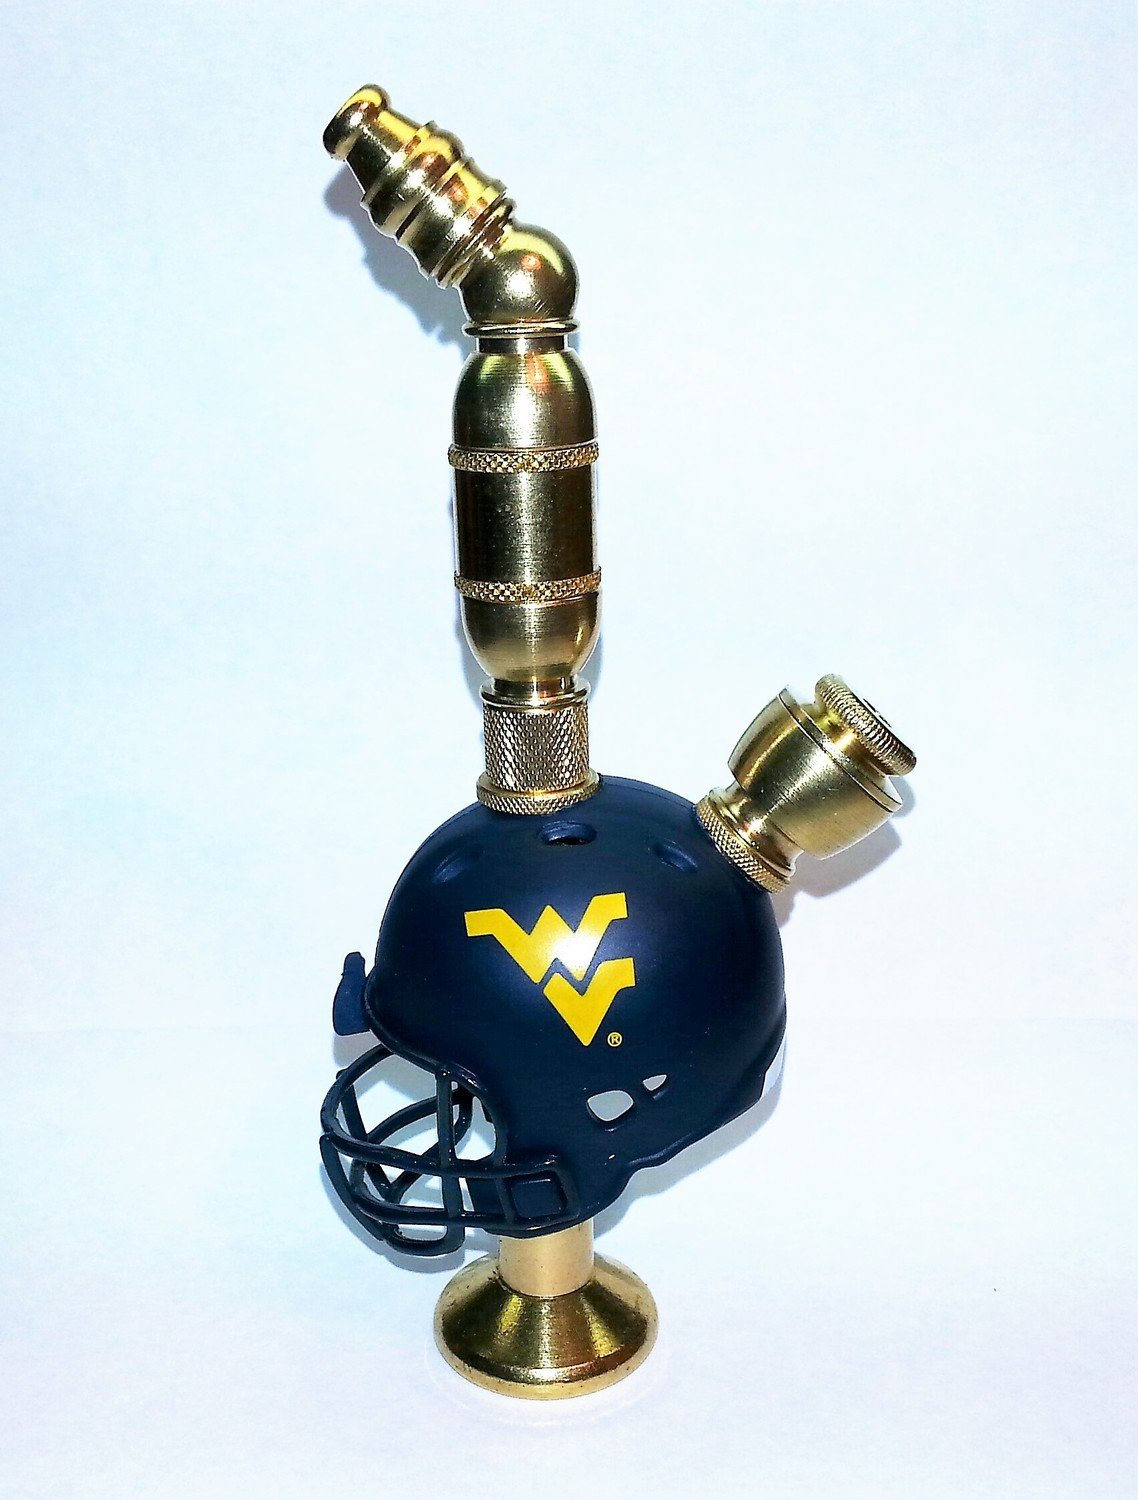 West Virginia Mountaineers Helmet Pipe  Stand Alone Design Brass Finish